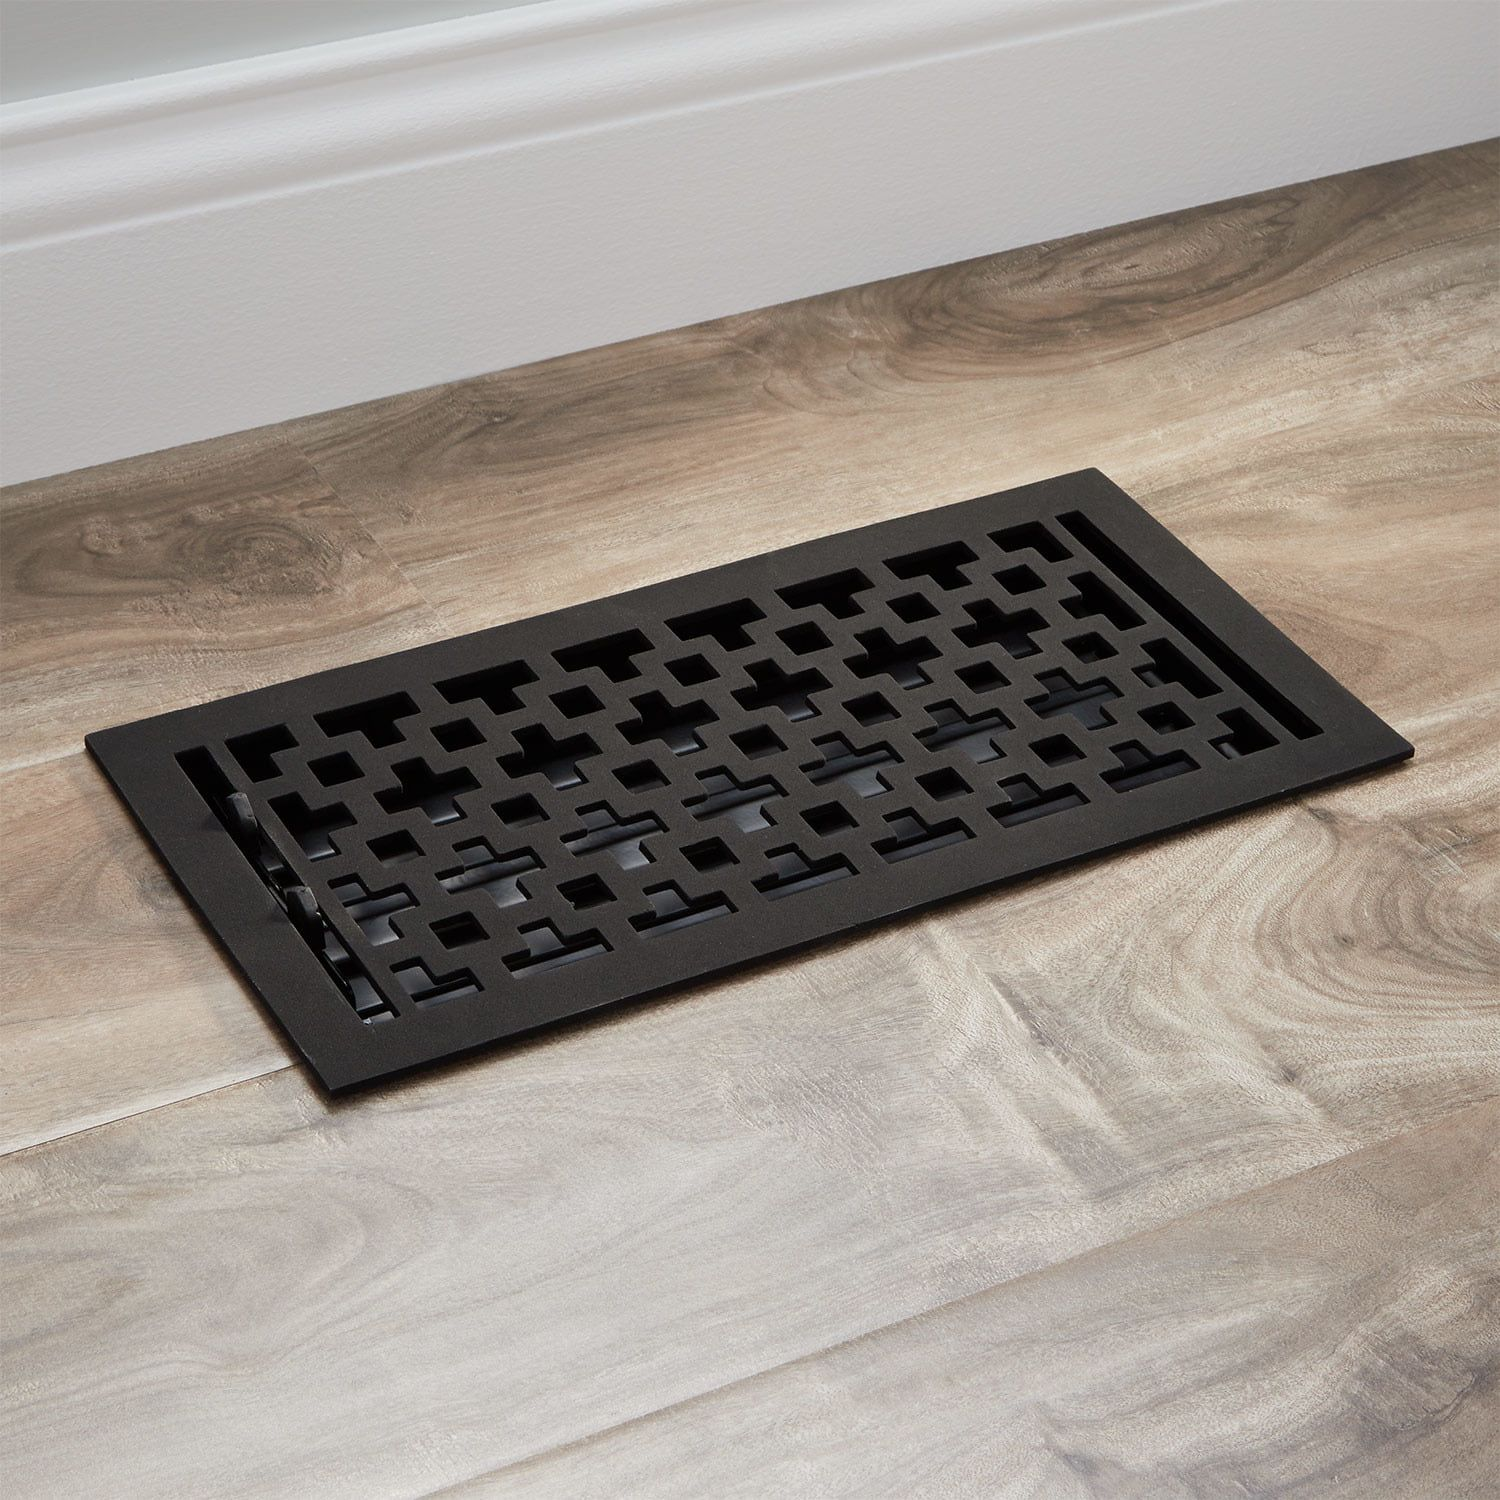 Featuring A Black Powder Coat The Durand Iron Floor Register Feels Premium To The Touch This Durable Product F Floor Registers Decorative Vent Cover Flooring